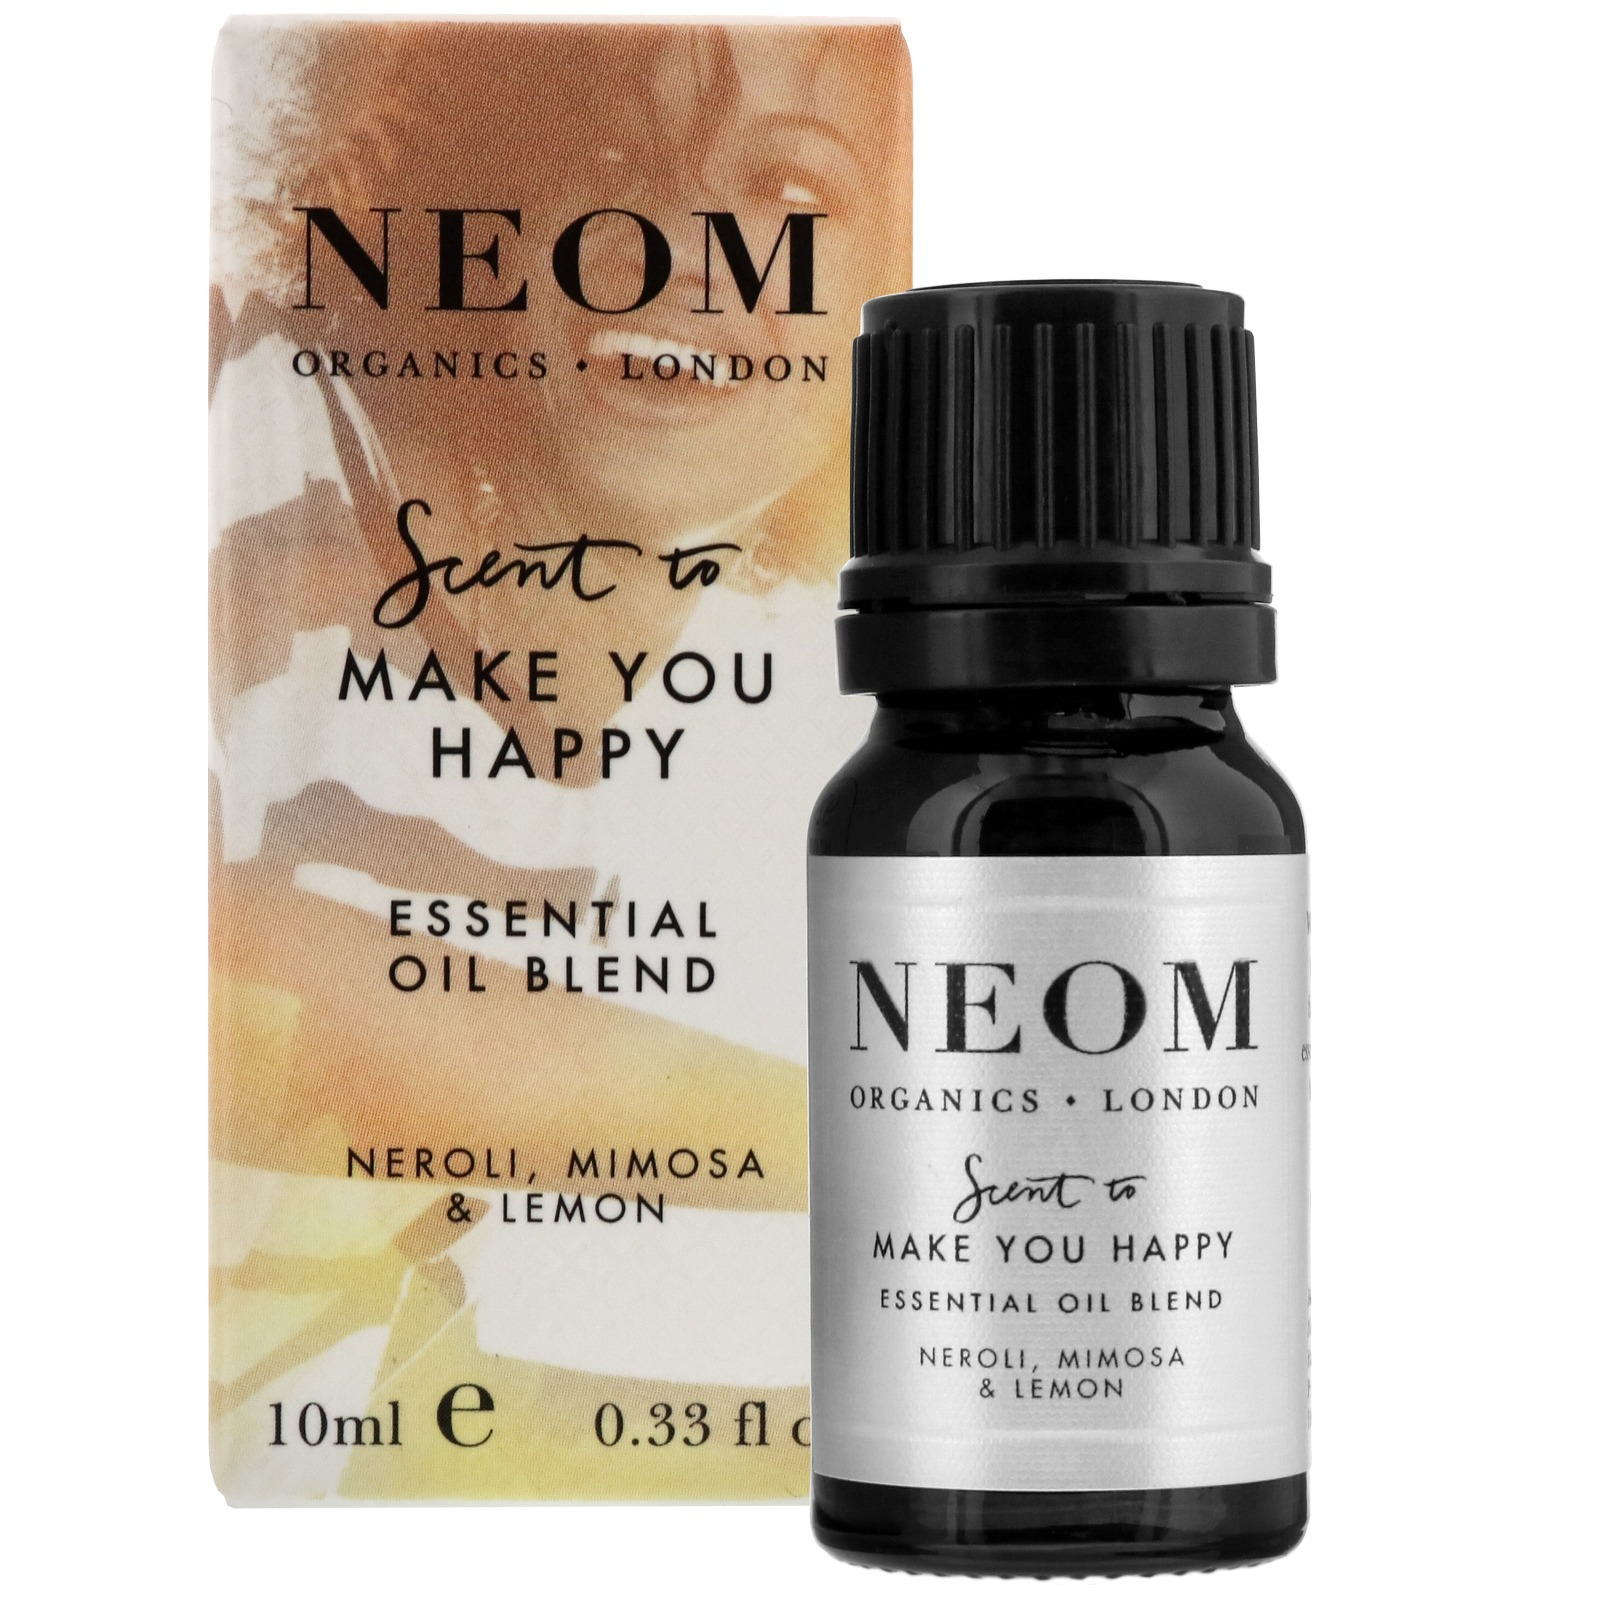 Neom Organics London Scent To Make You Happy Essential Oil Blend 10ml